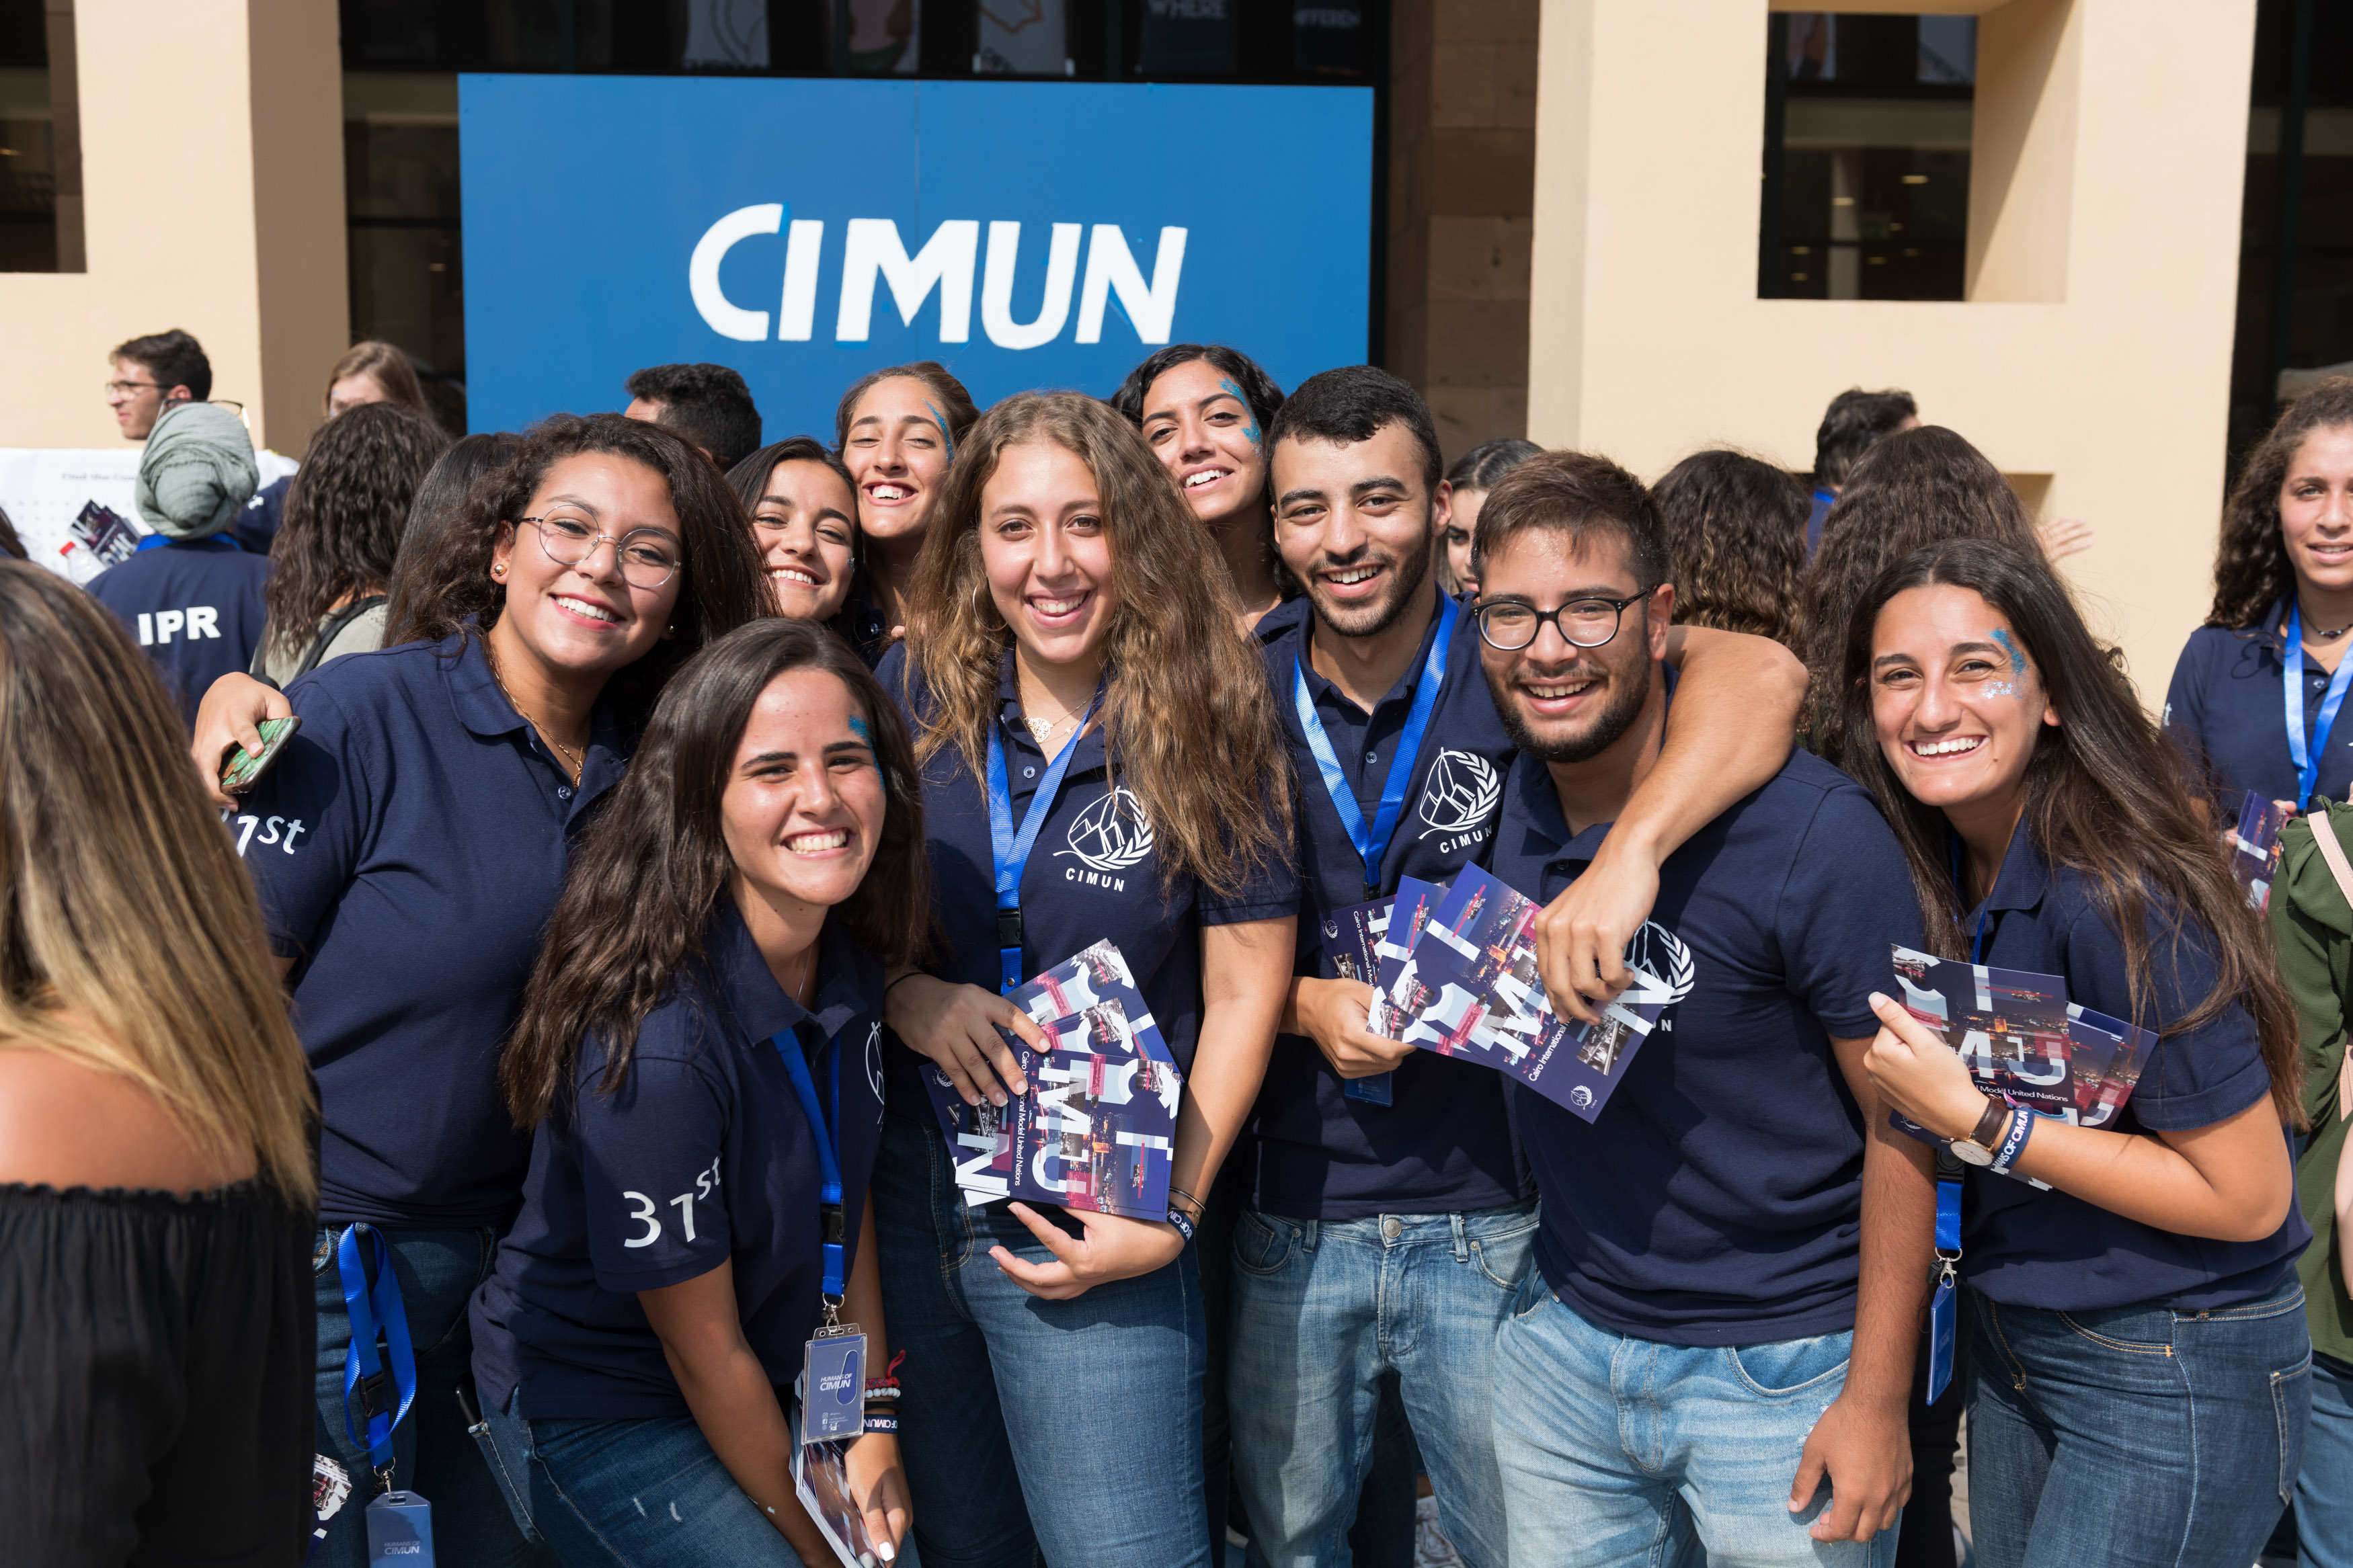 CIMUN students